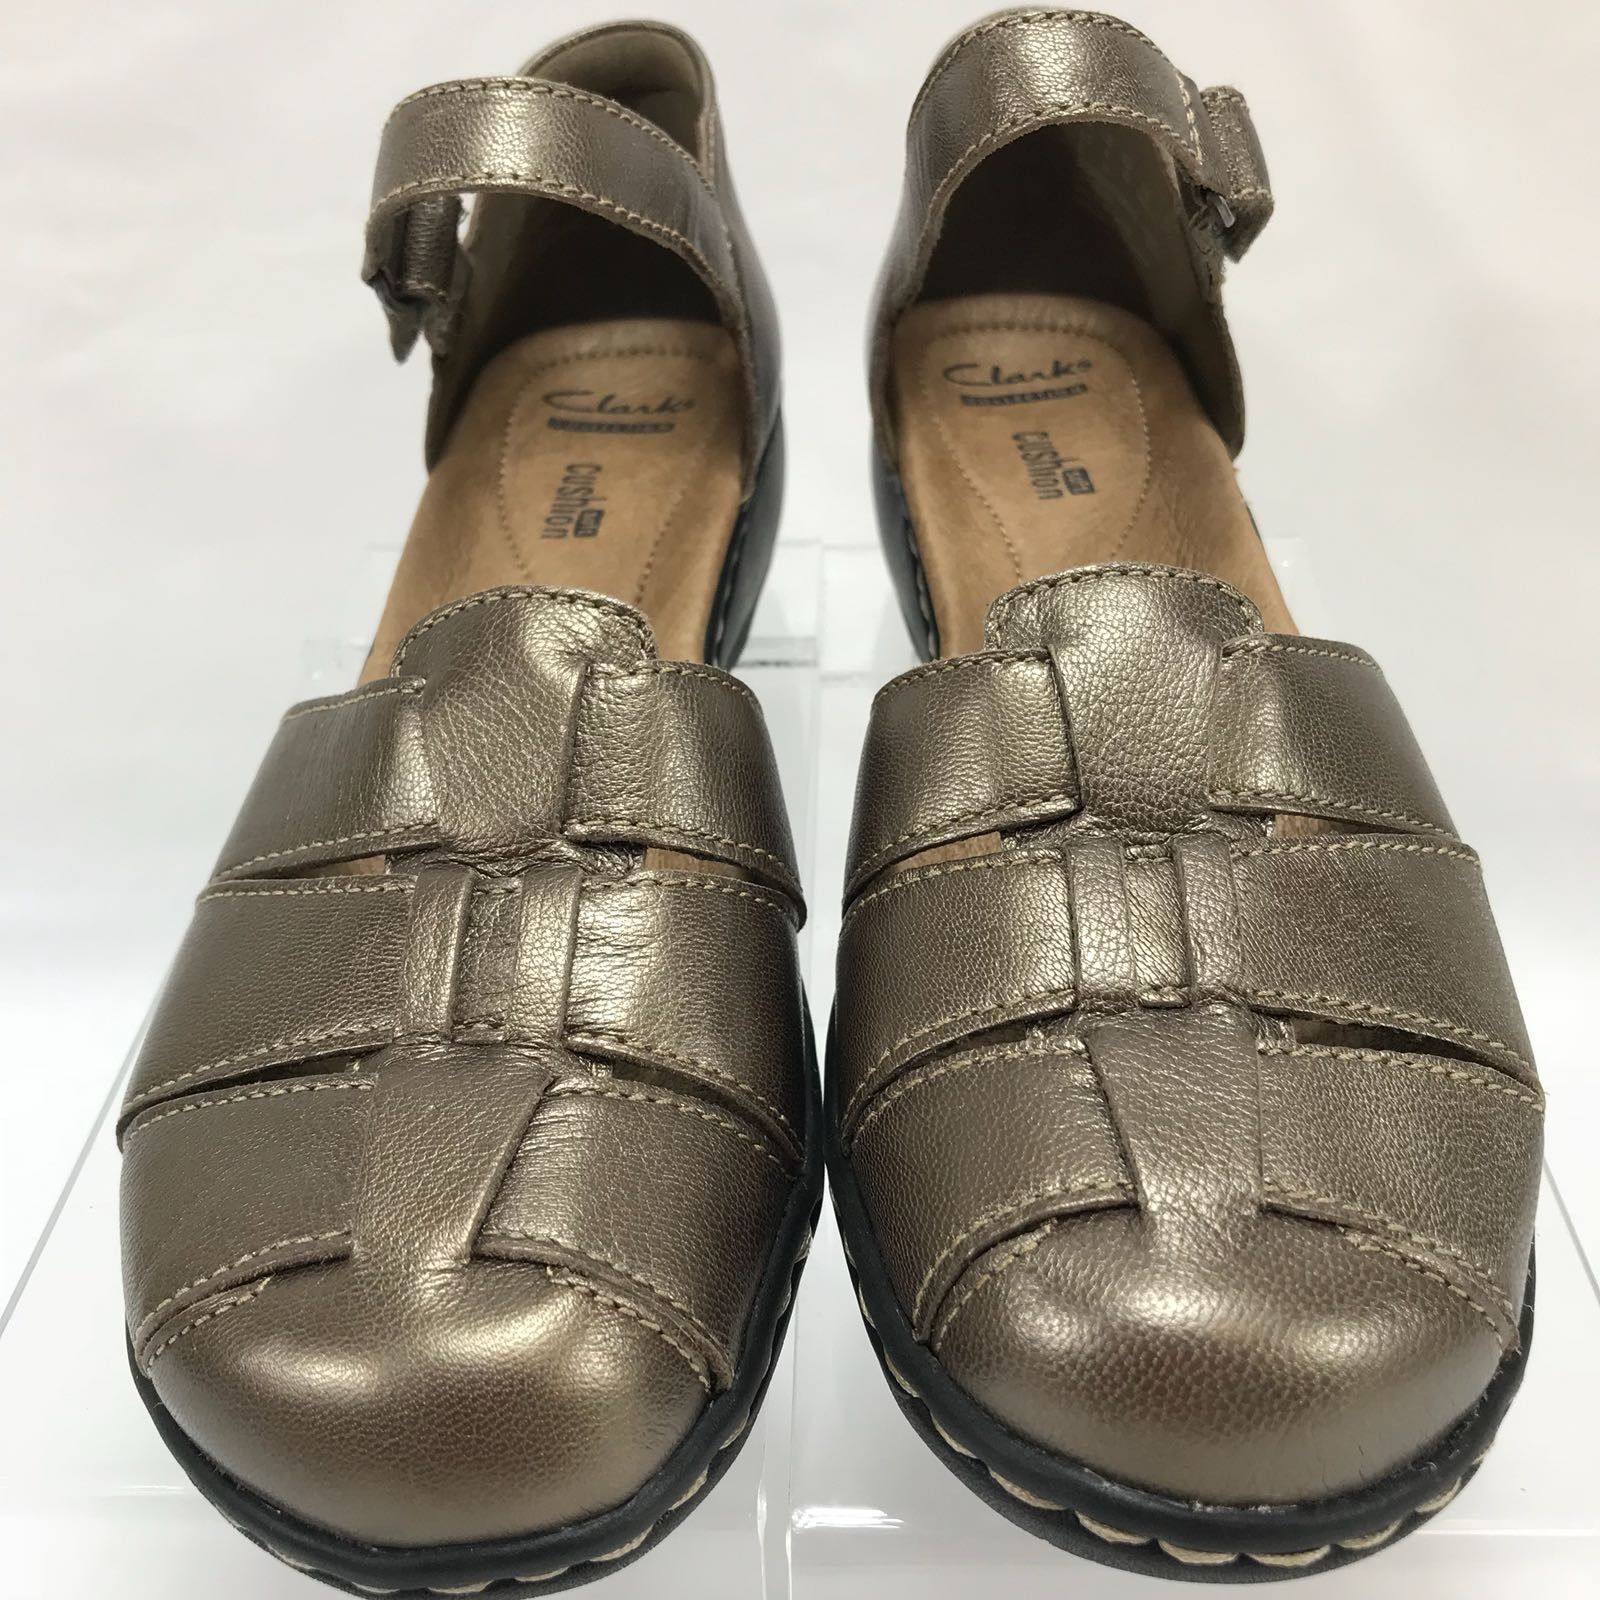 Clarks Bendables Womens 8W Bronze Leather Cutouts Comfort Loafers Flats Shoes S2